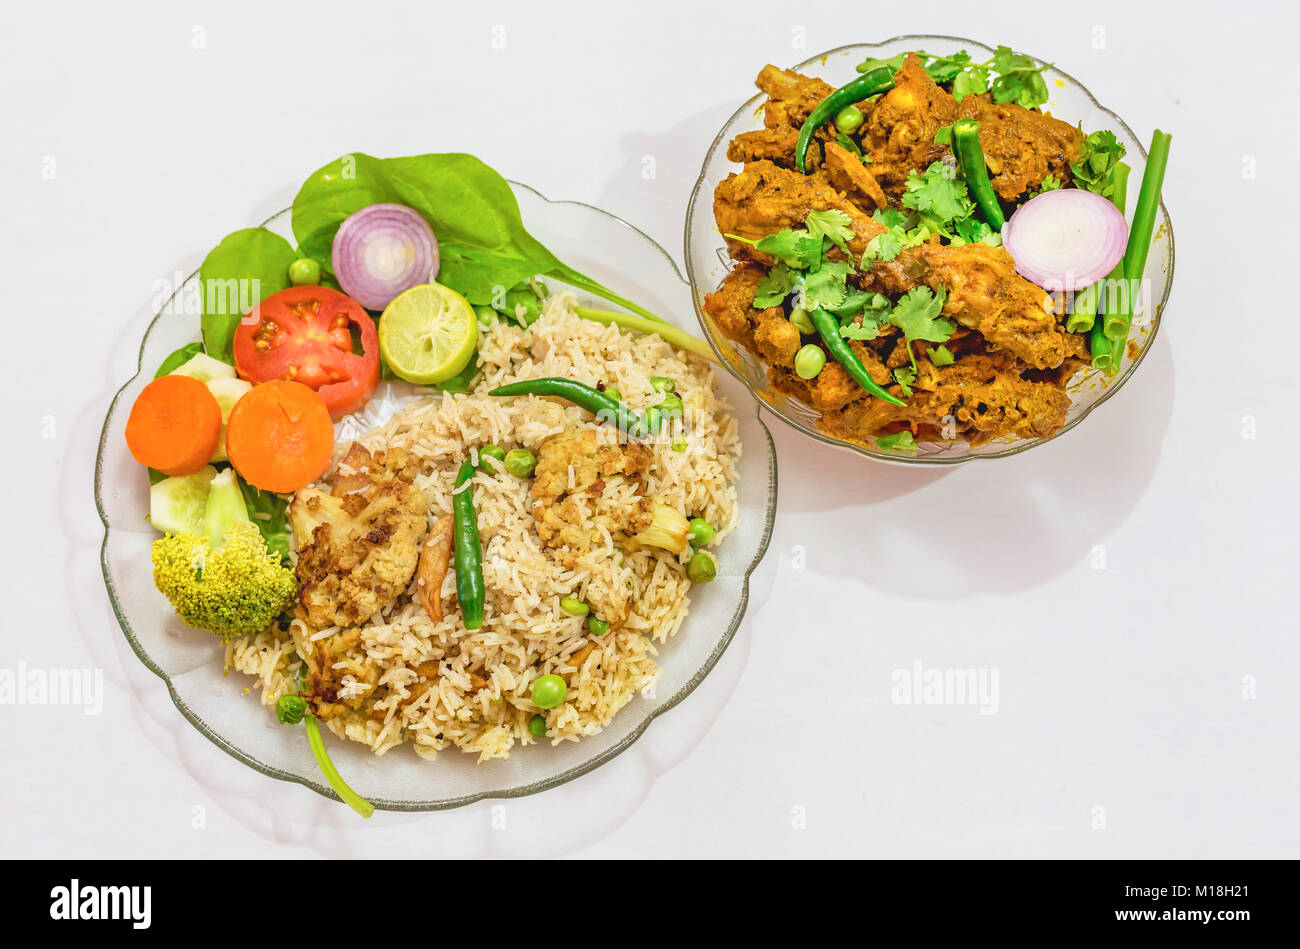 Indian meal of veg fried rice and spicy chicken kosha isolated on white background. A popular Bengali food. - Stock Image